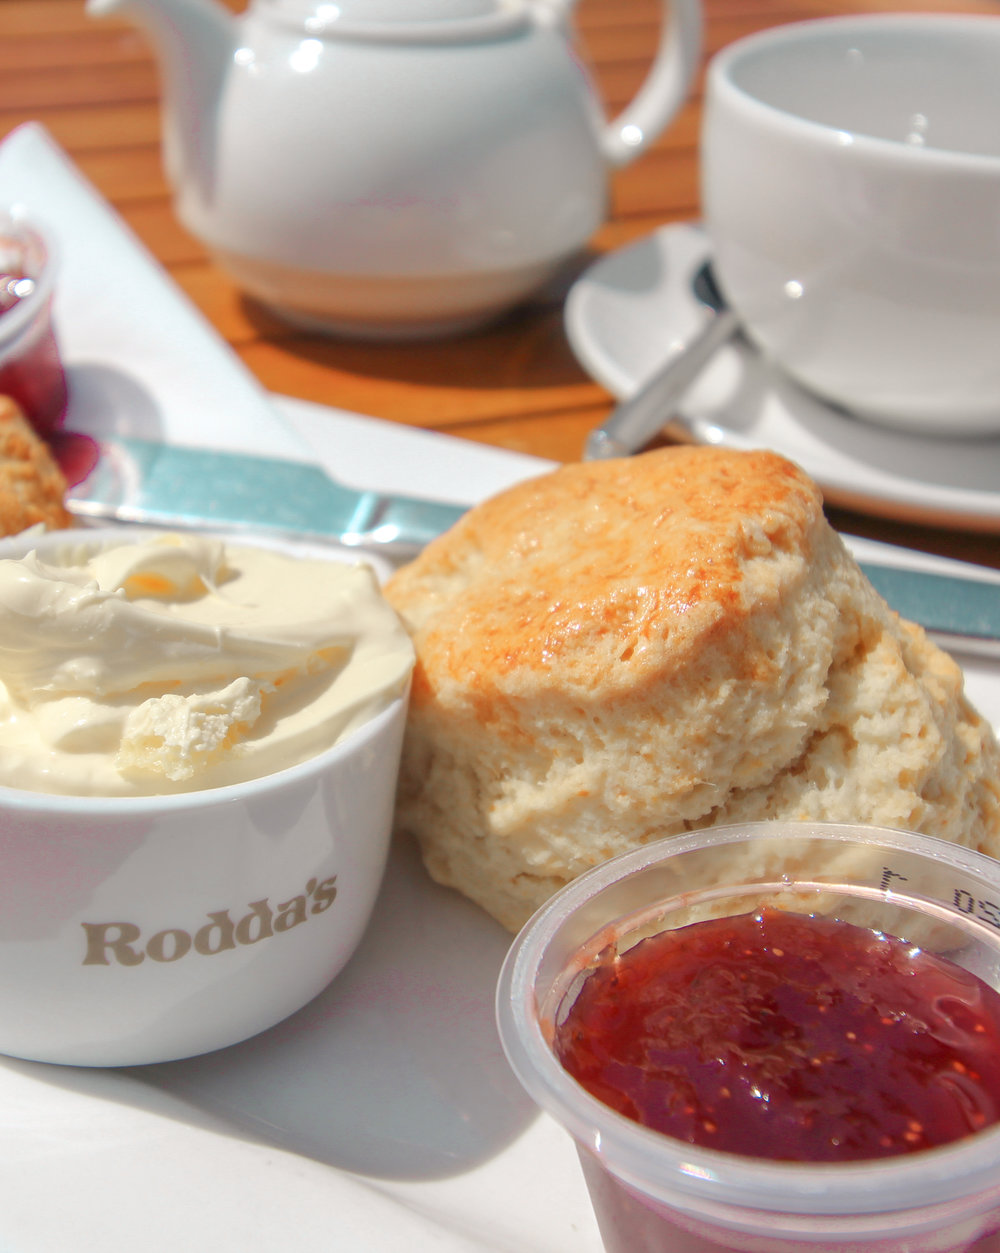 Cornish Cream Tea - Clotted cream and jam on a scone!